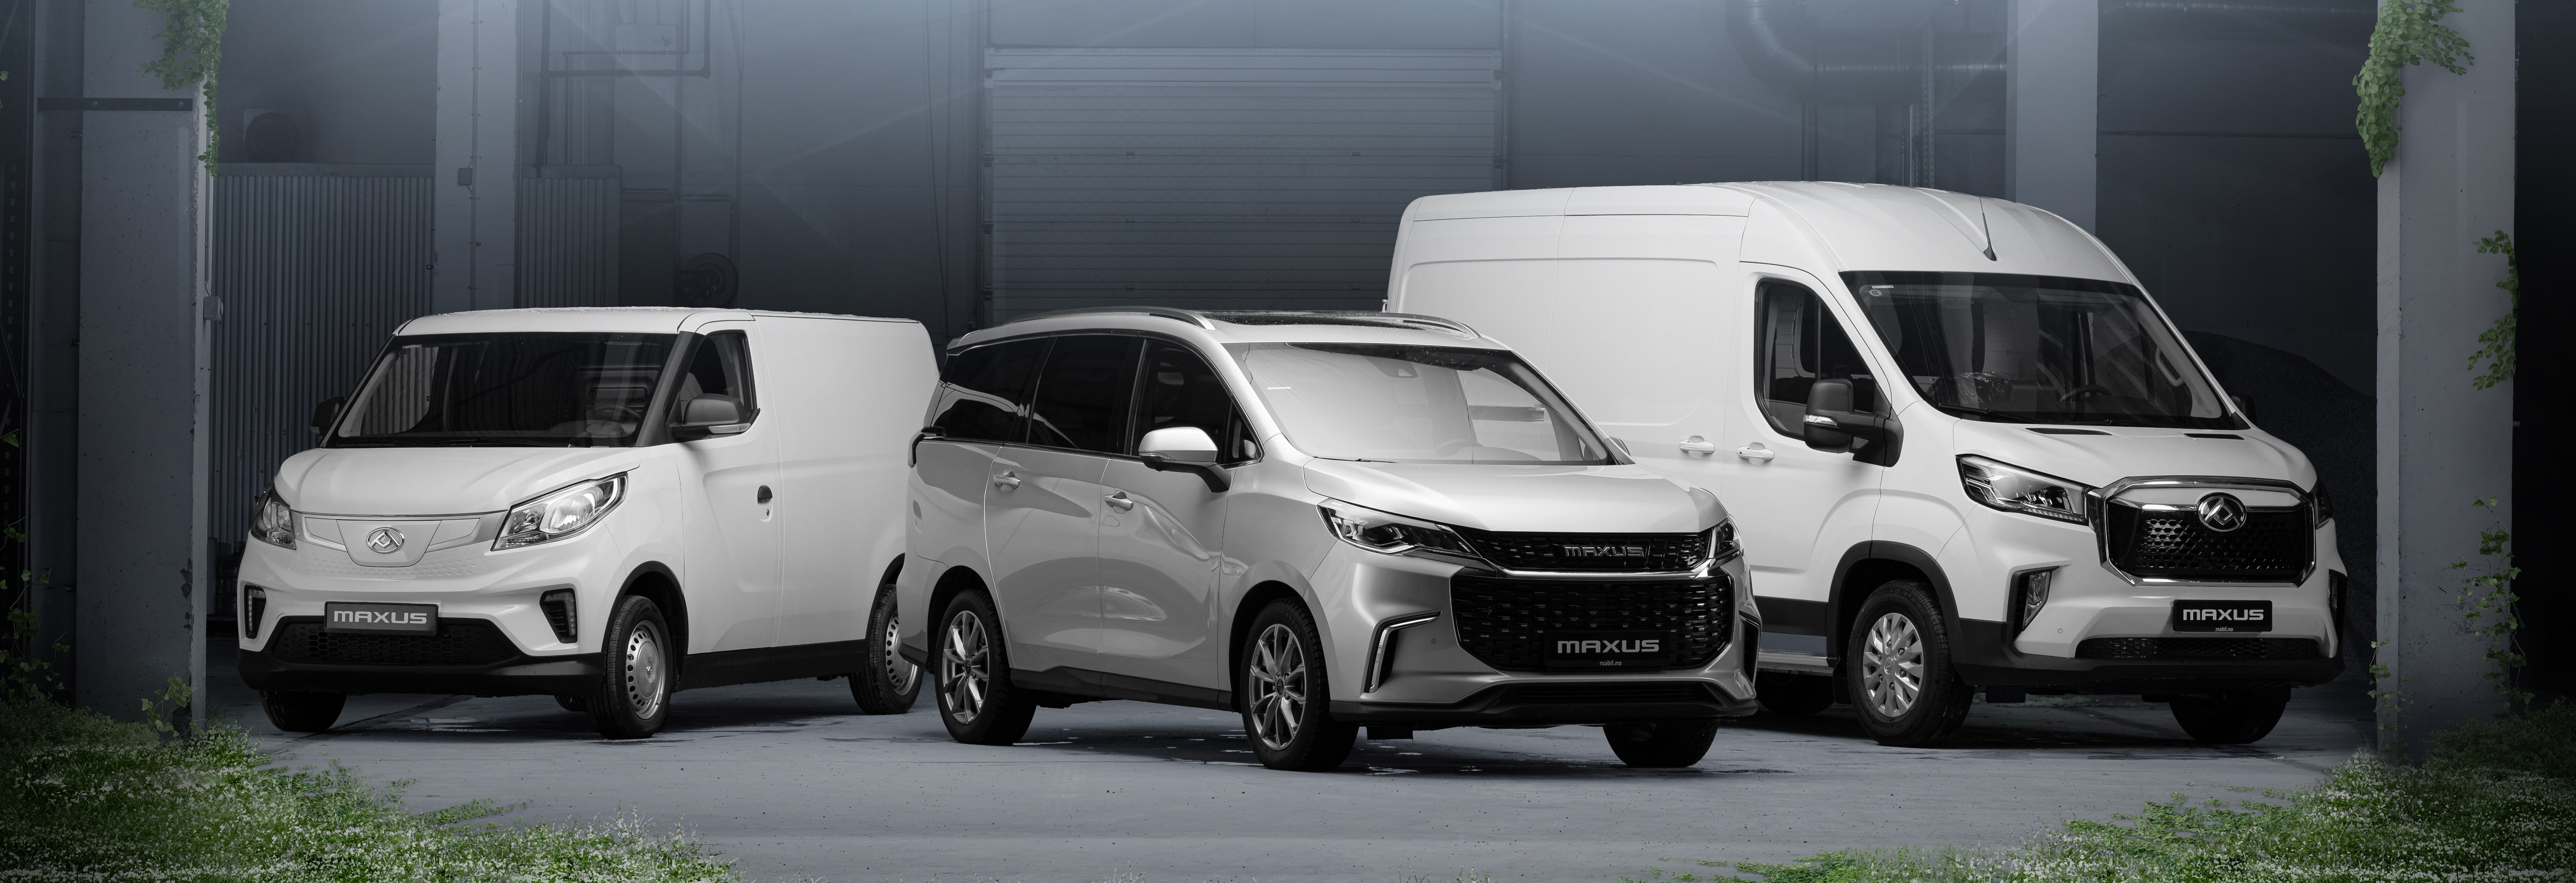 Our product portfolio expands - Introducing Byd and Maxus